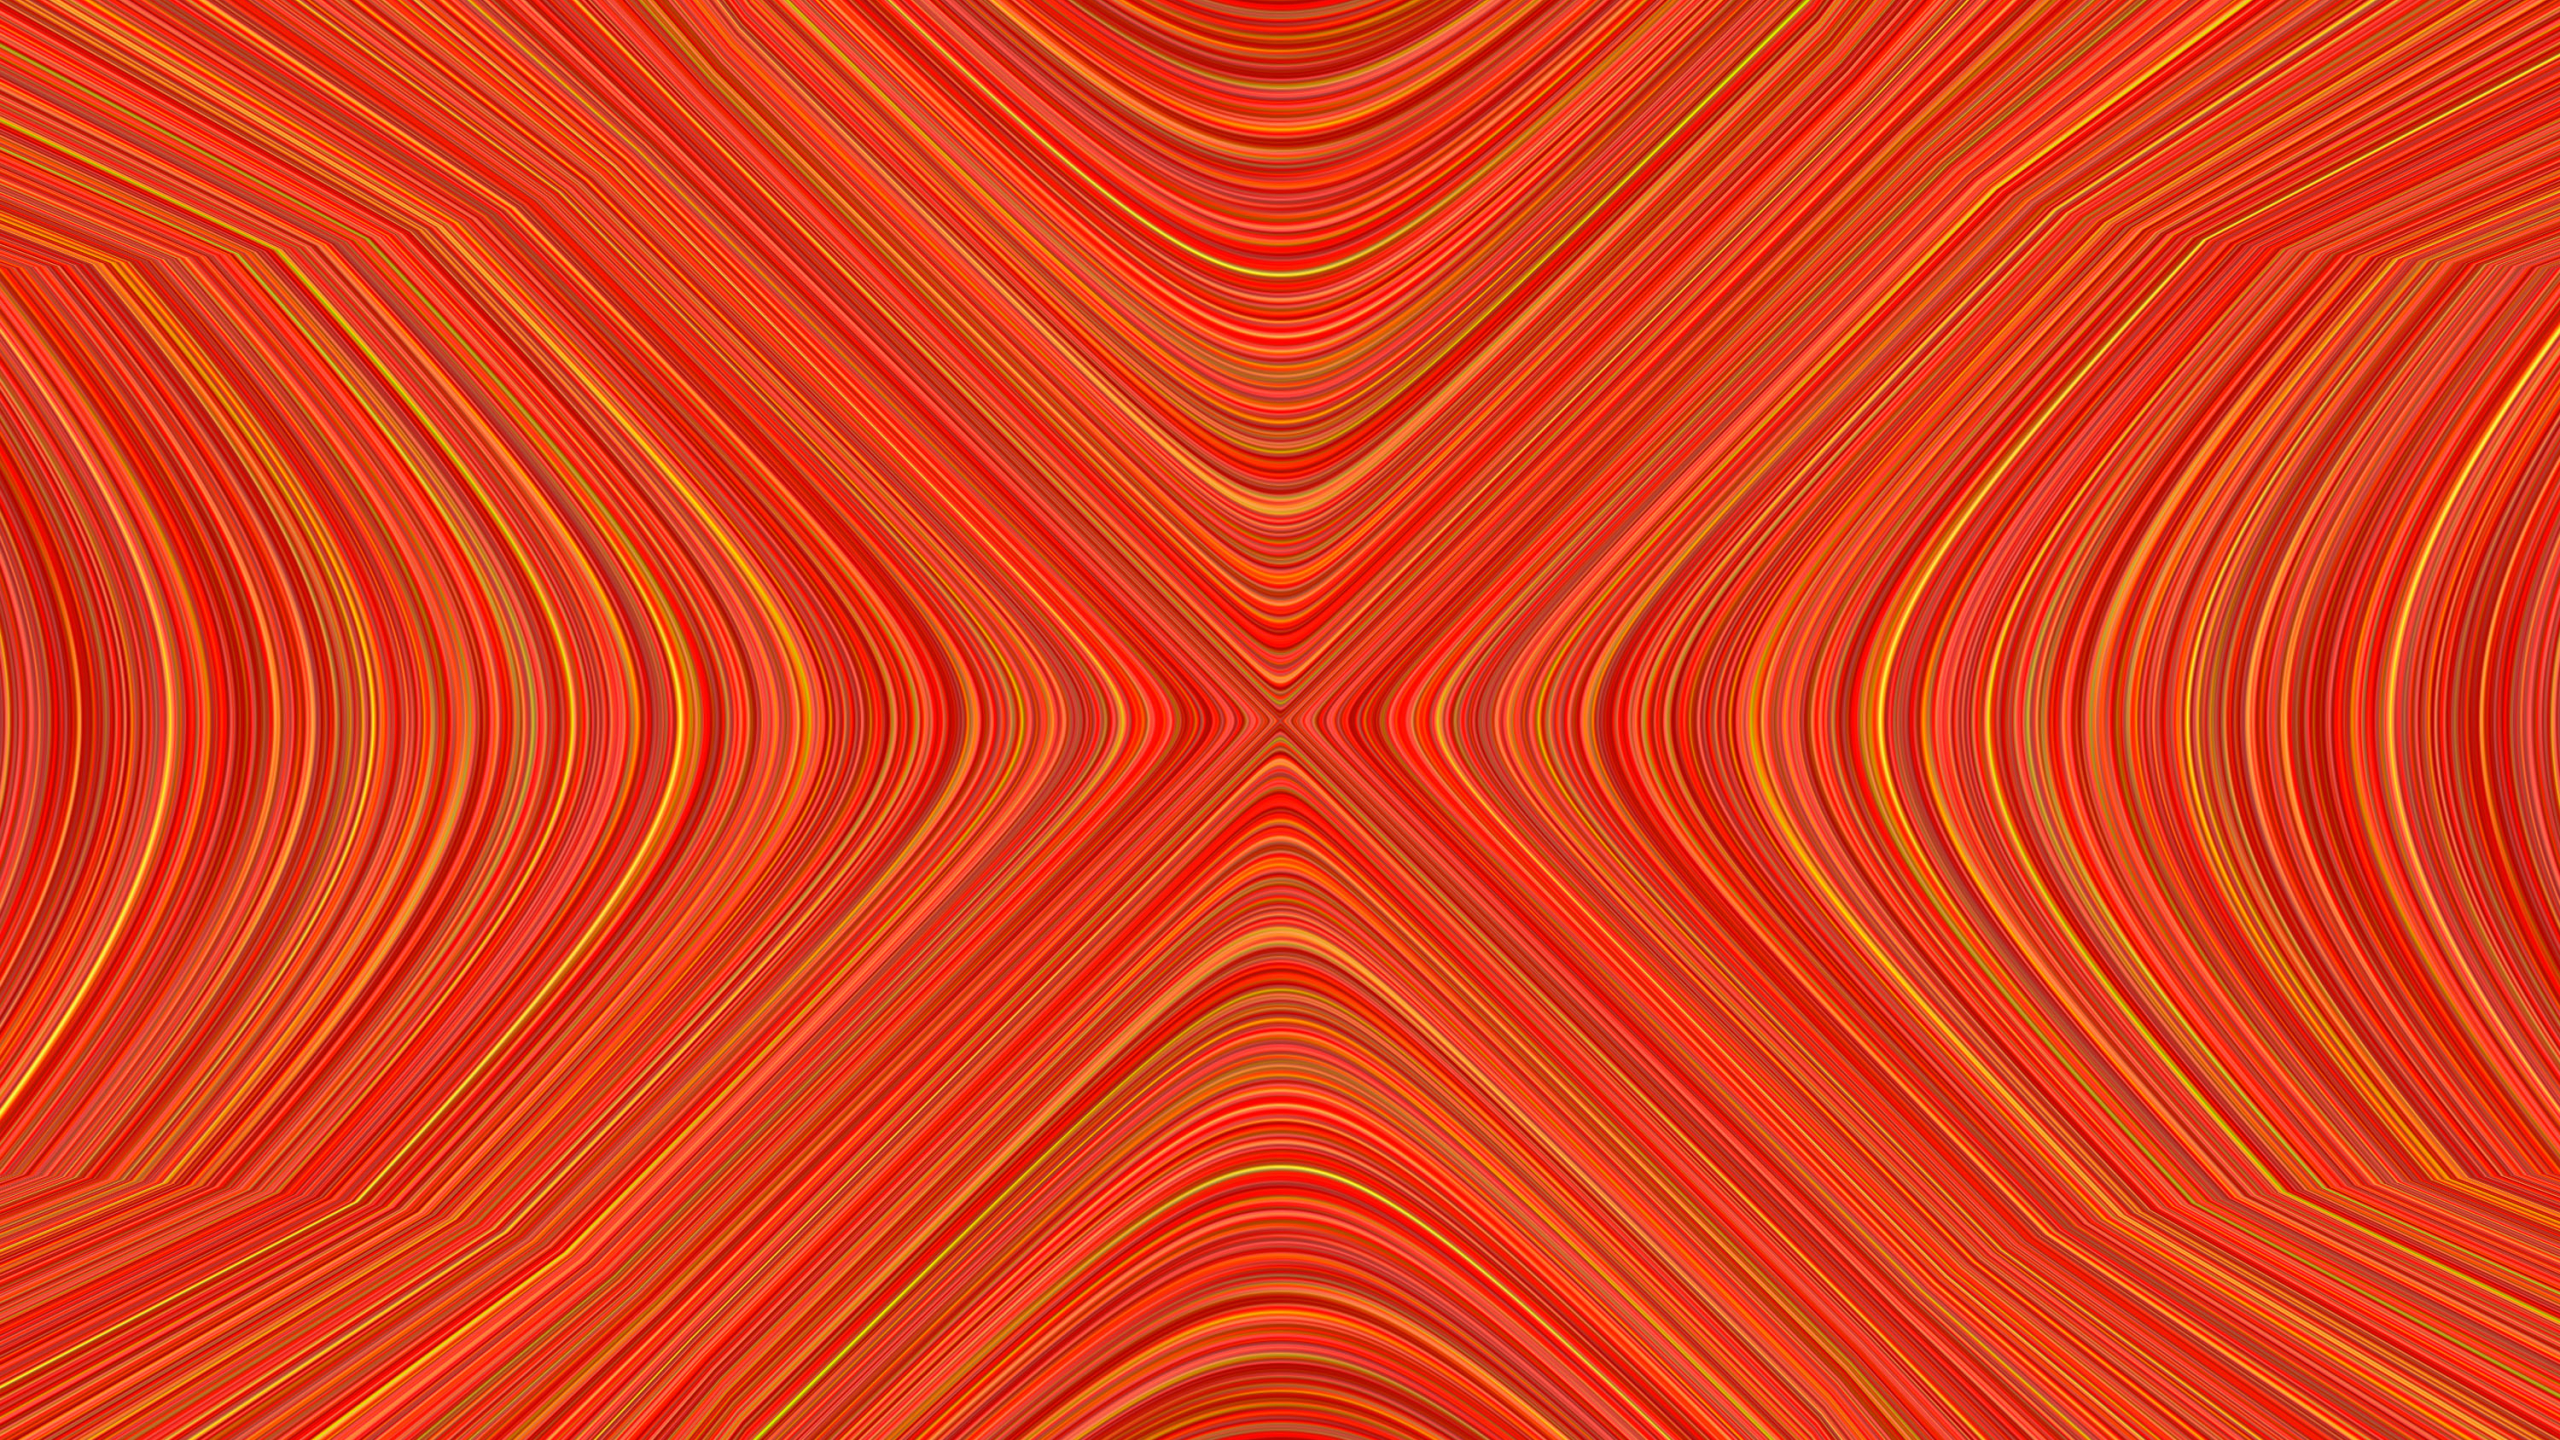 2560x1440 Colorful Red Abstract Art 1440p Resolution Wallpaper Hd Abstract 4k Wallpapers Images Photos And Background